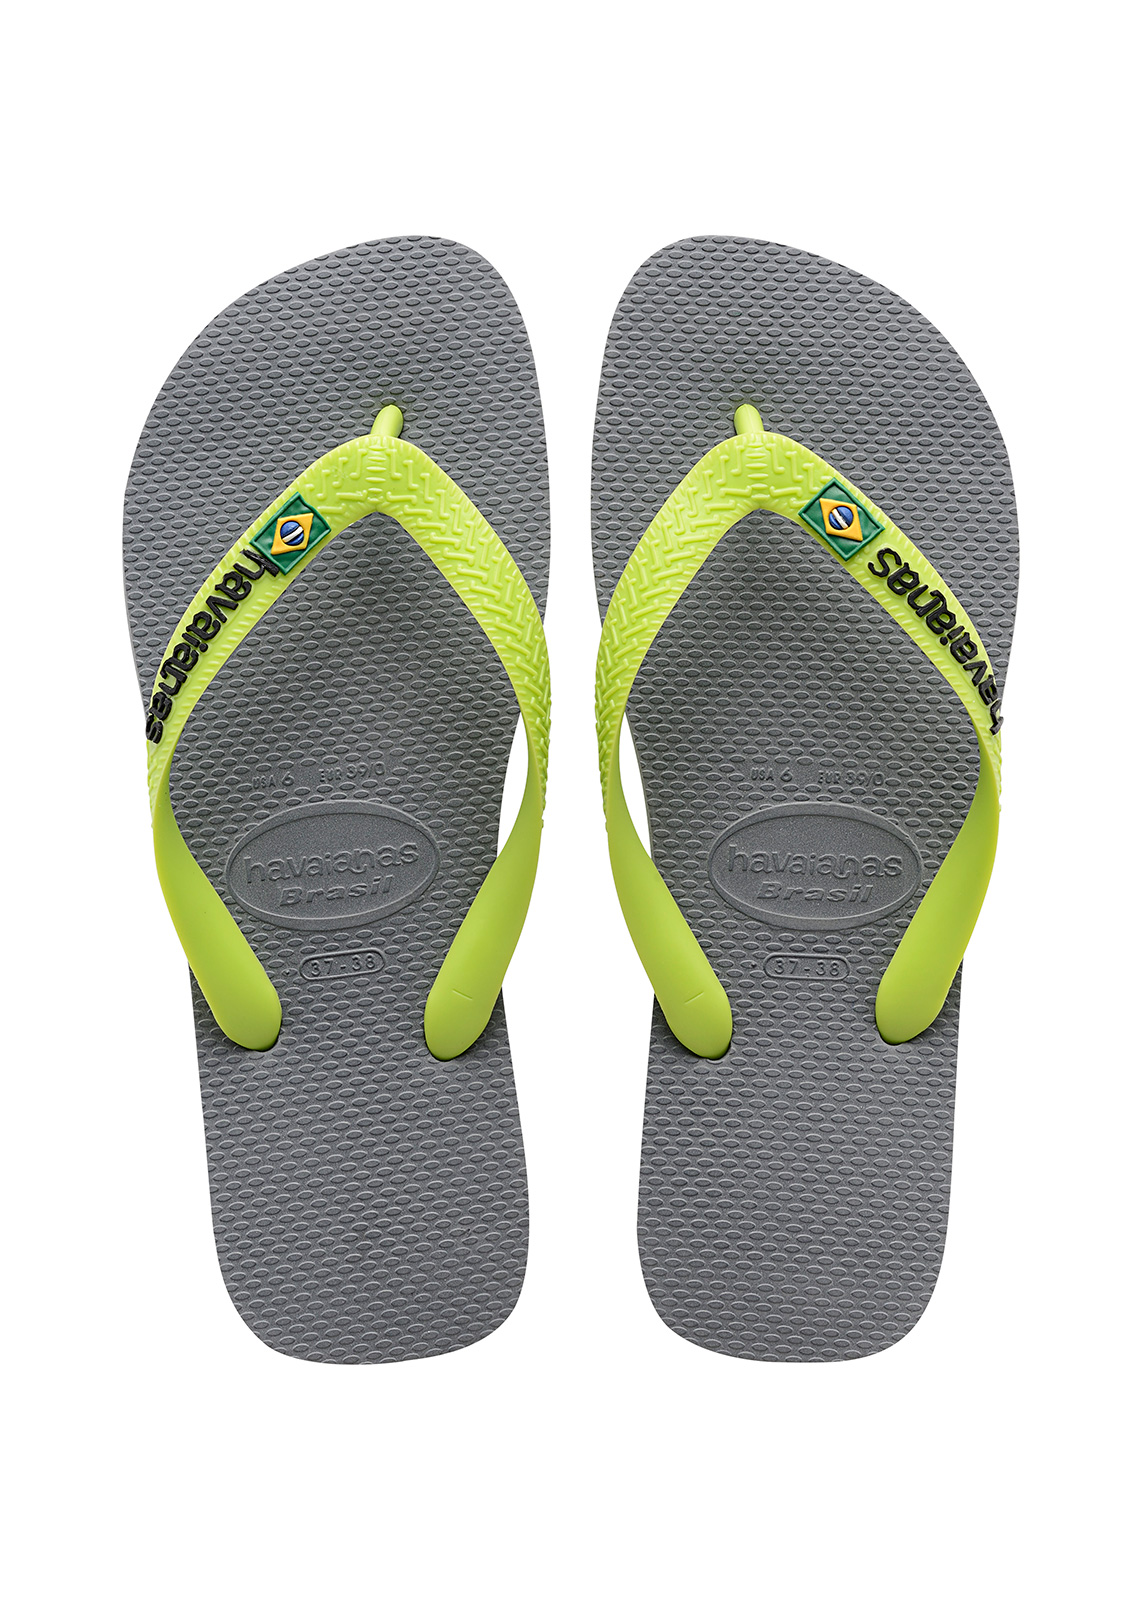 02e26f70006c5d ... Two-tone grey and lime green flip flops with the HAVAIANAS logo - Brasil  Logo ...